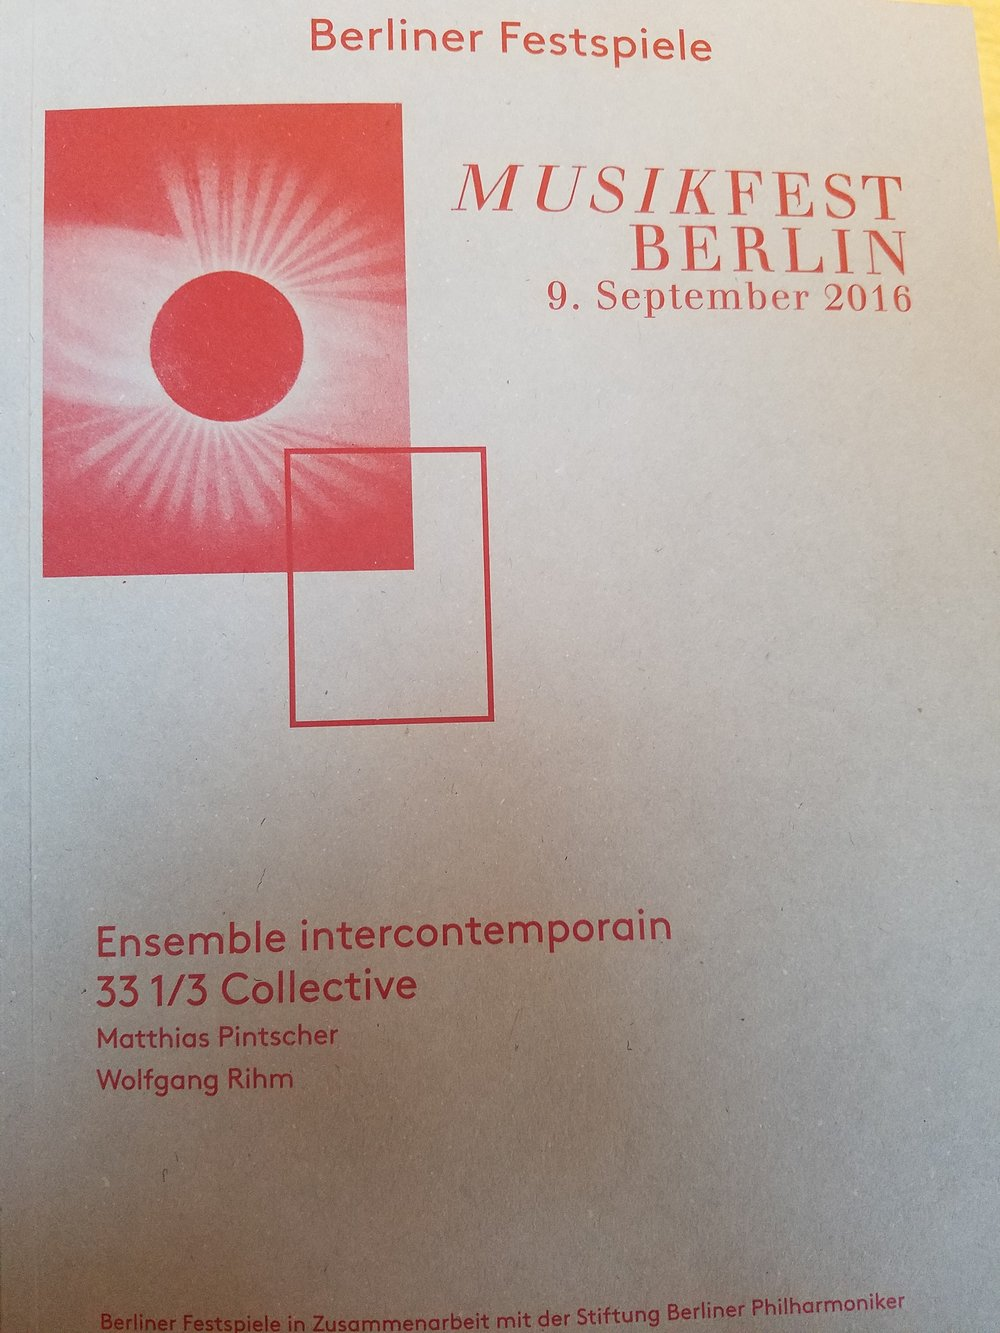 Program from my favorite concert thus far...Wolfgang Rihm was there in the audience, too!